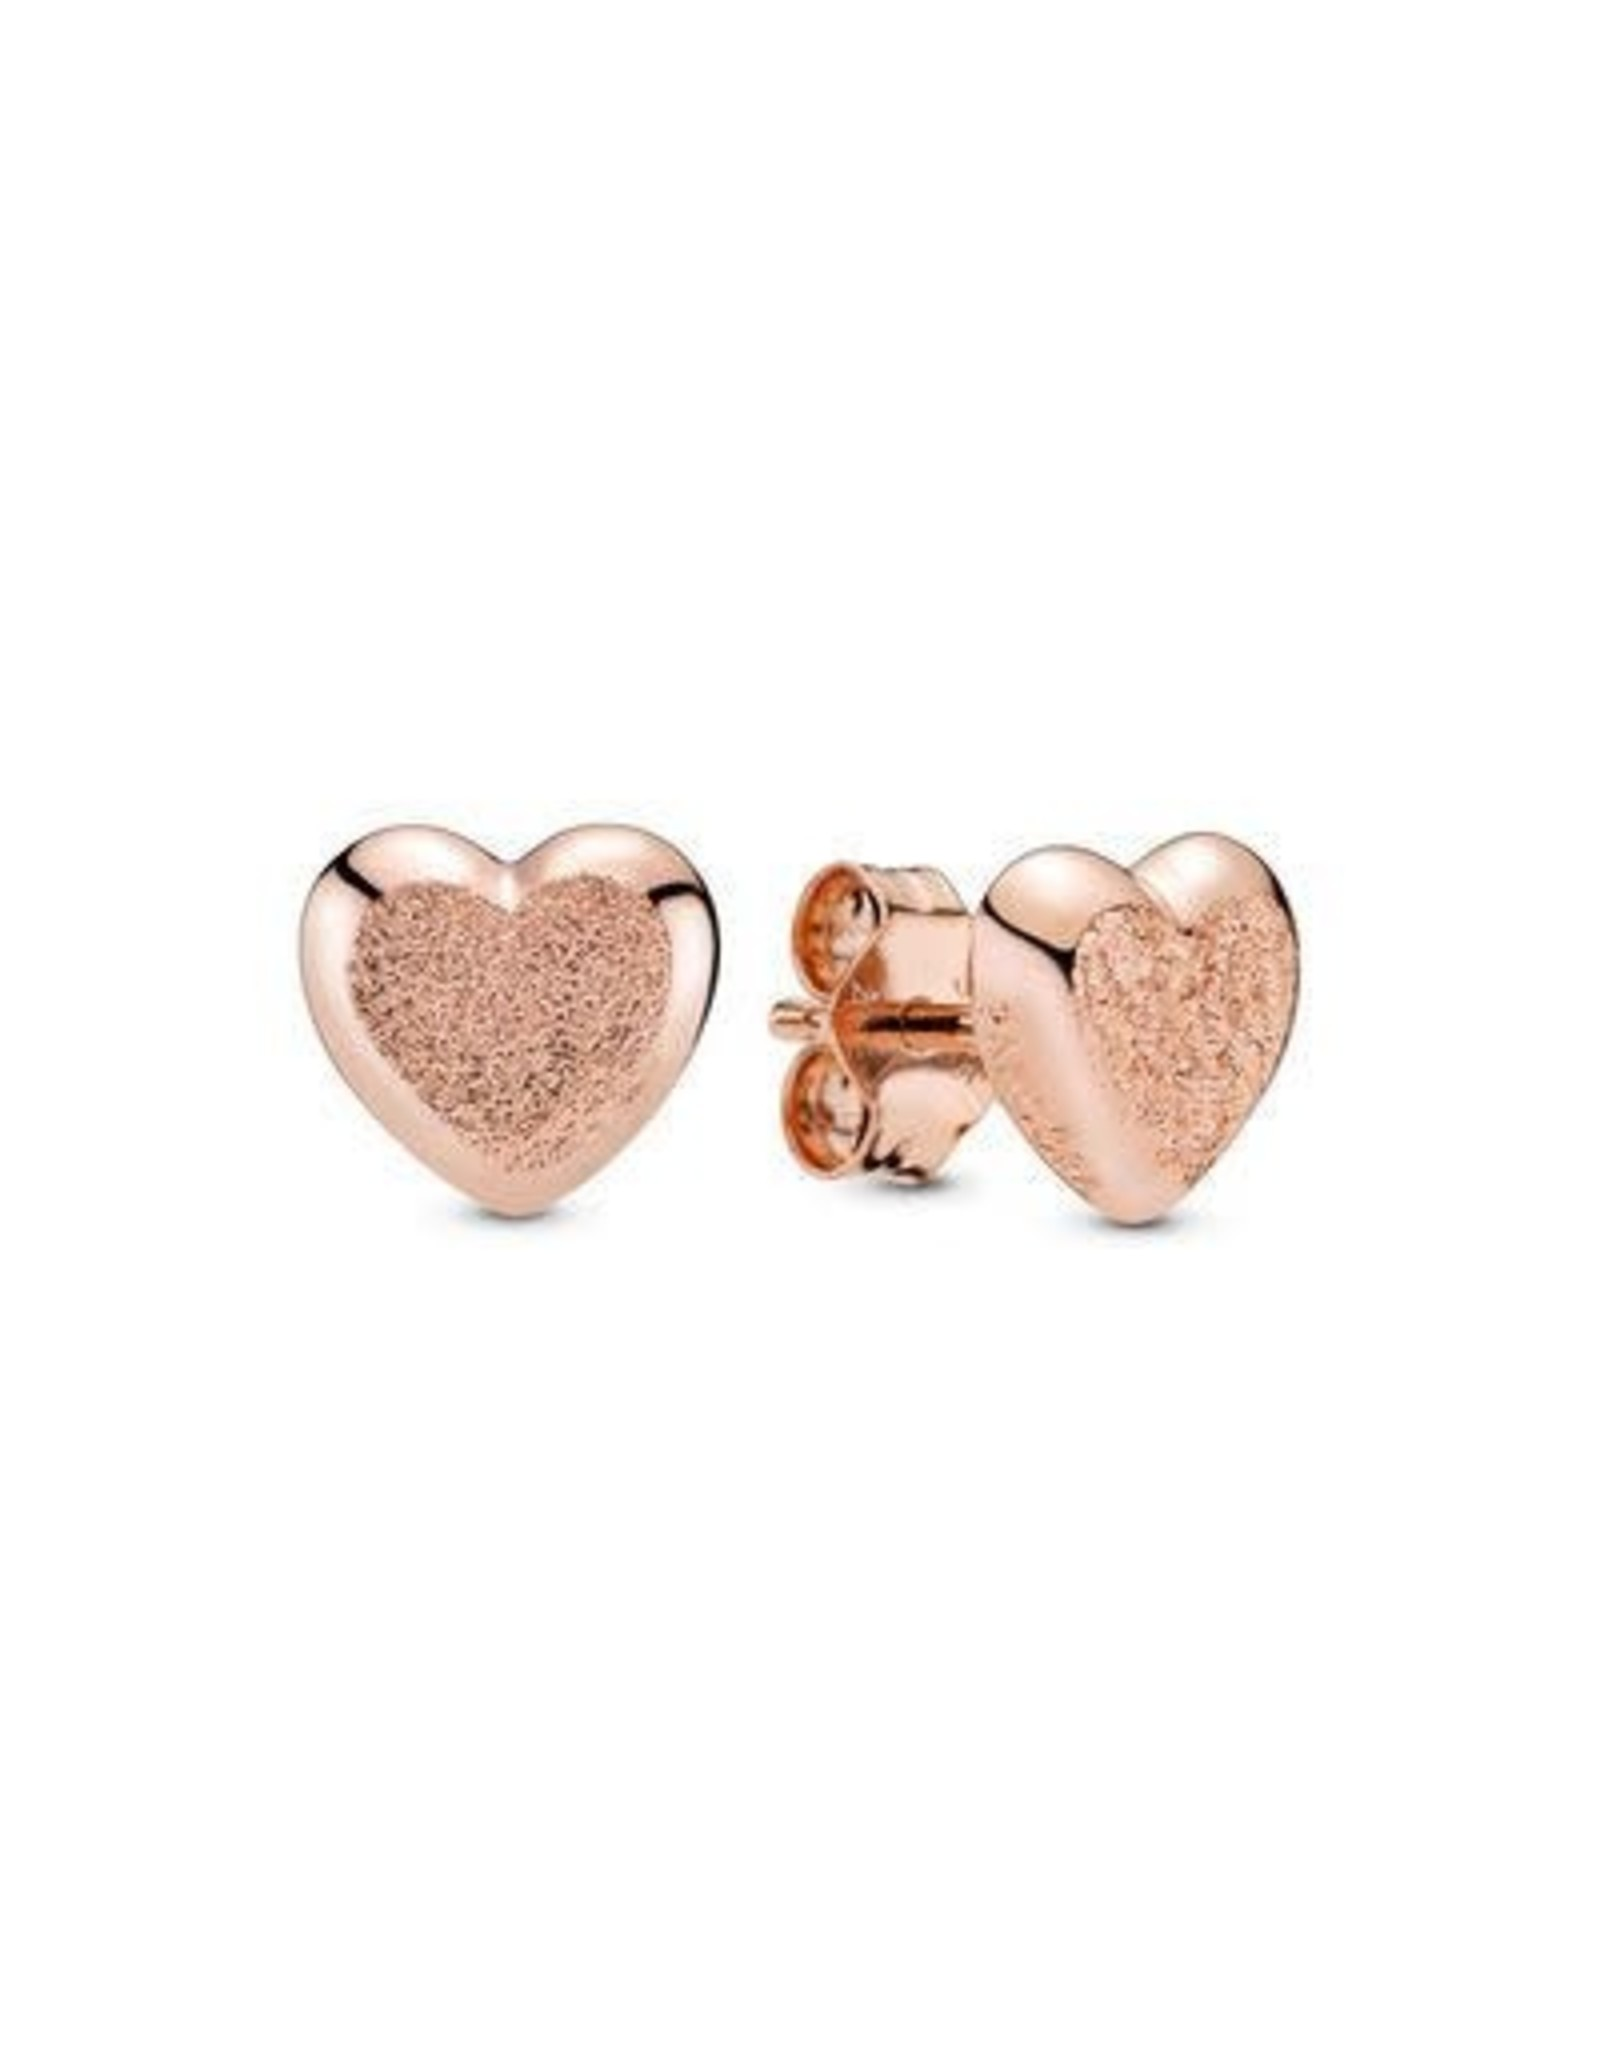 Pandora Pandora Heart Stud Earrings In Diamond-Pointed Rose Gold